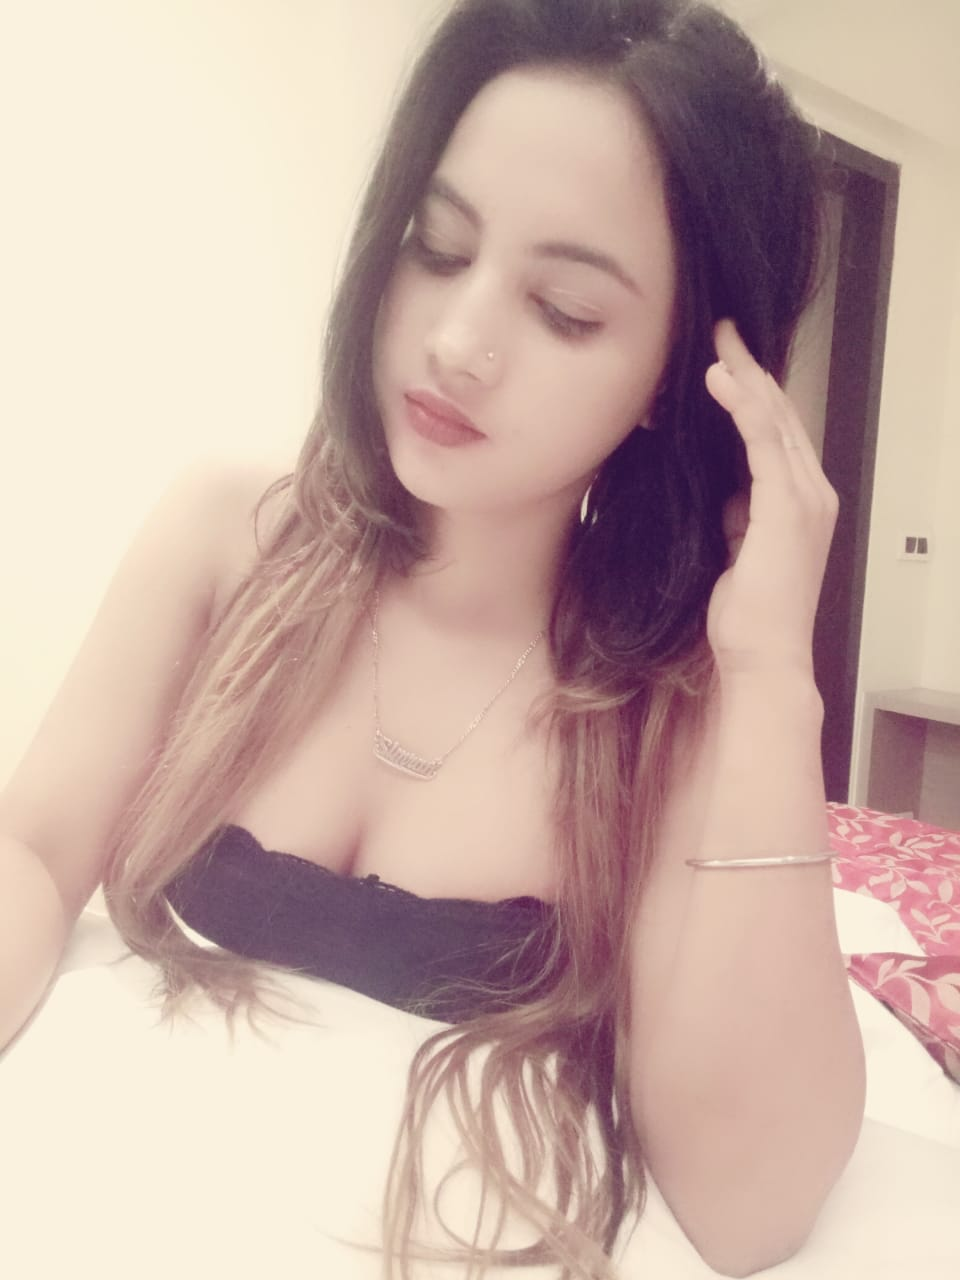 airoli Model Escorts In